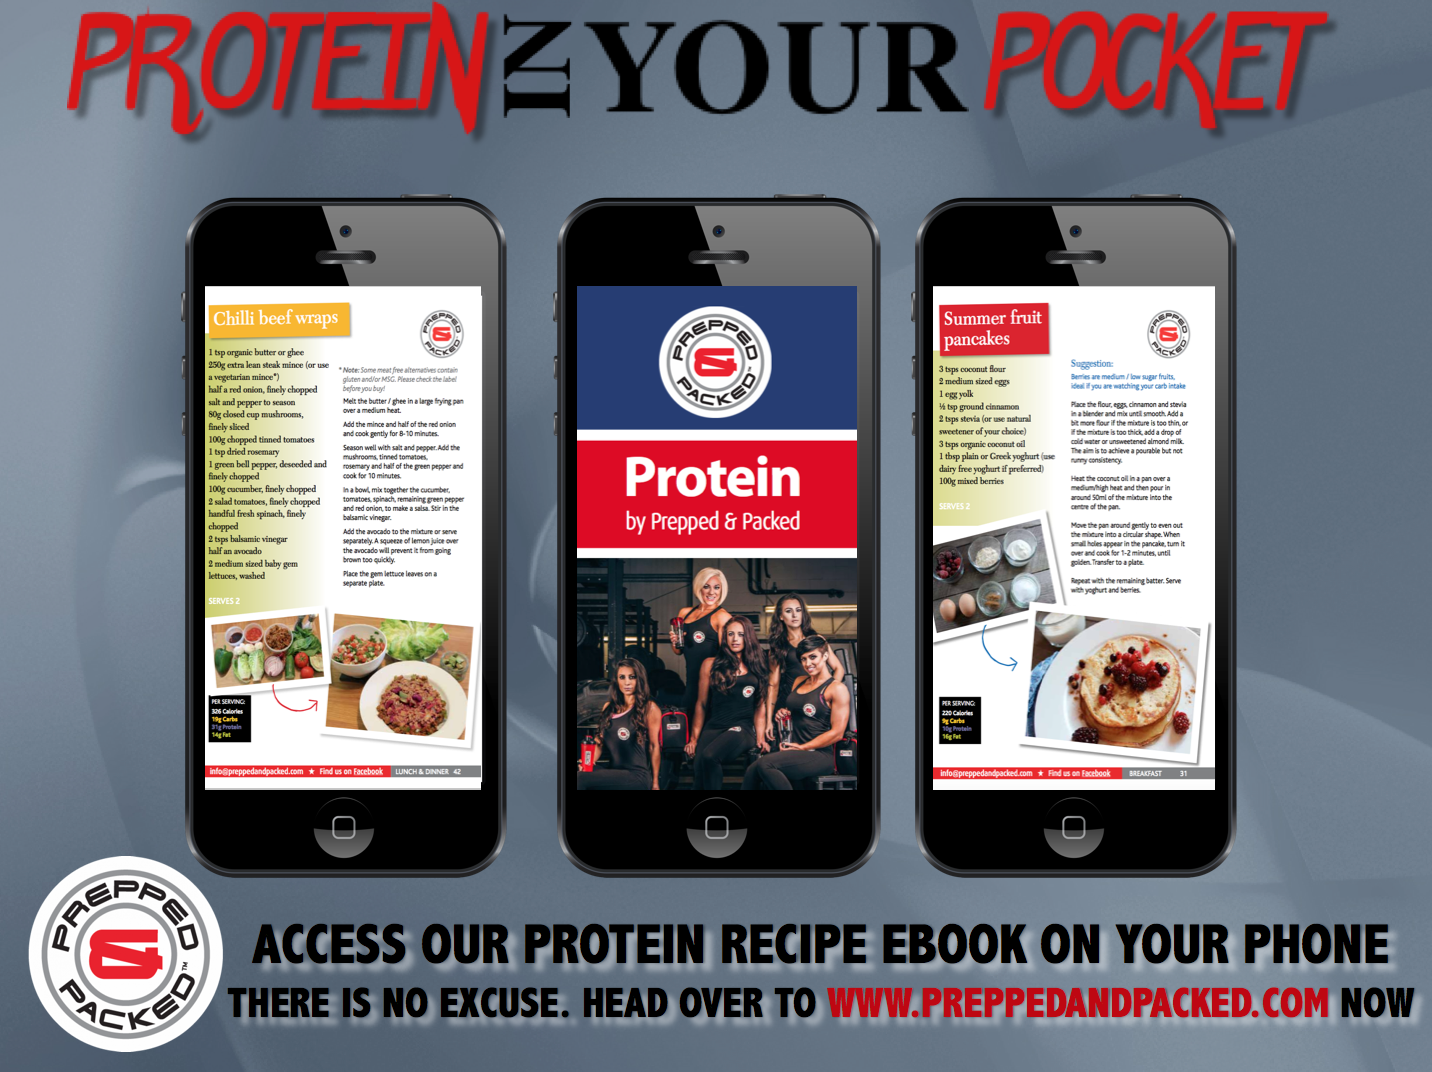 Protein in your Pocket